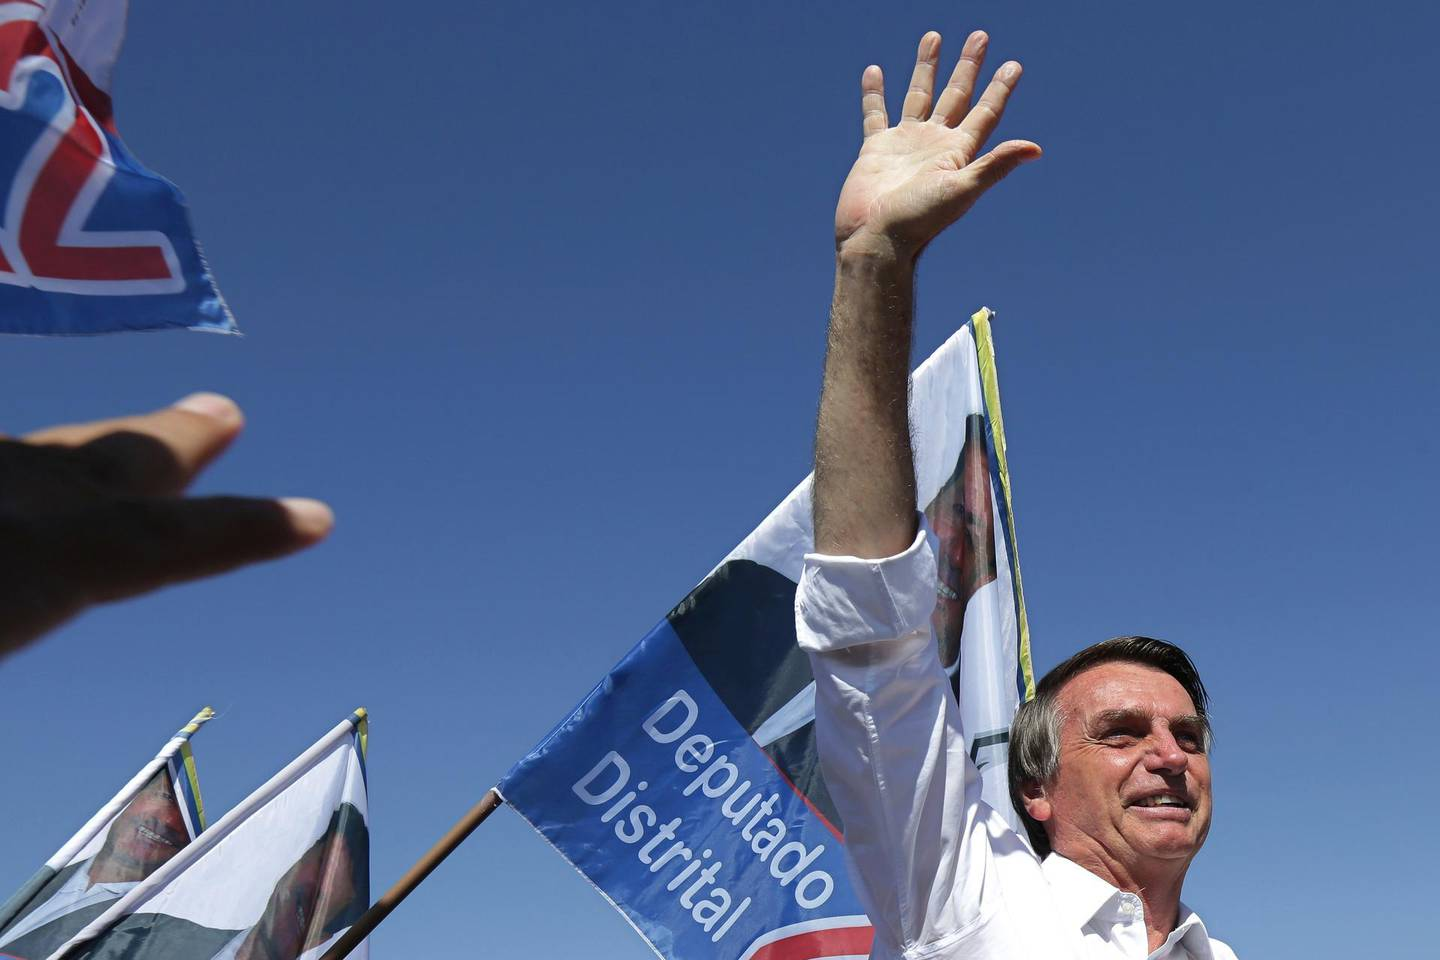 FILE - In this Sept. 5, 2018 file photo, Jair Bolsonaro, National Social Liberal Party presidential candidate, greets supporters during a campaign rally in Brasilia, Brazil. Now that former President Luis Inacio Lula da Silva has been bumped off the ballot for a corruption conviction, Bolsonaro is leading in the polls, apparently with the aid of evangelical backers. (AP Photo/Eraldo Peres, File)